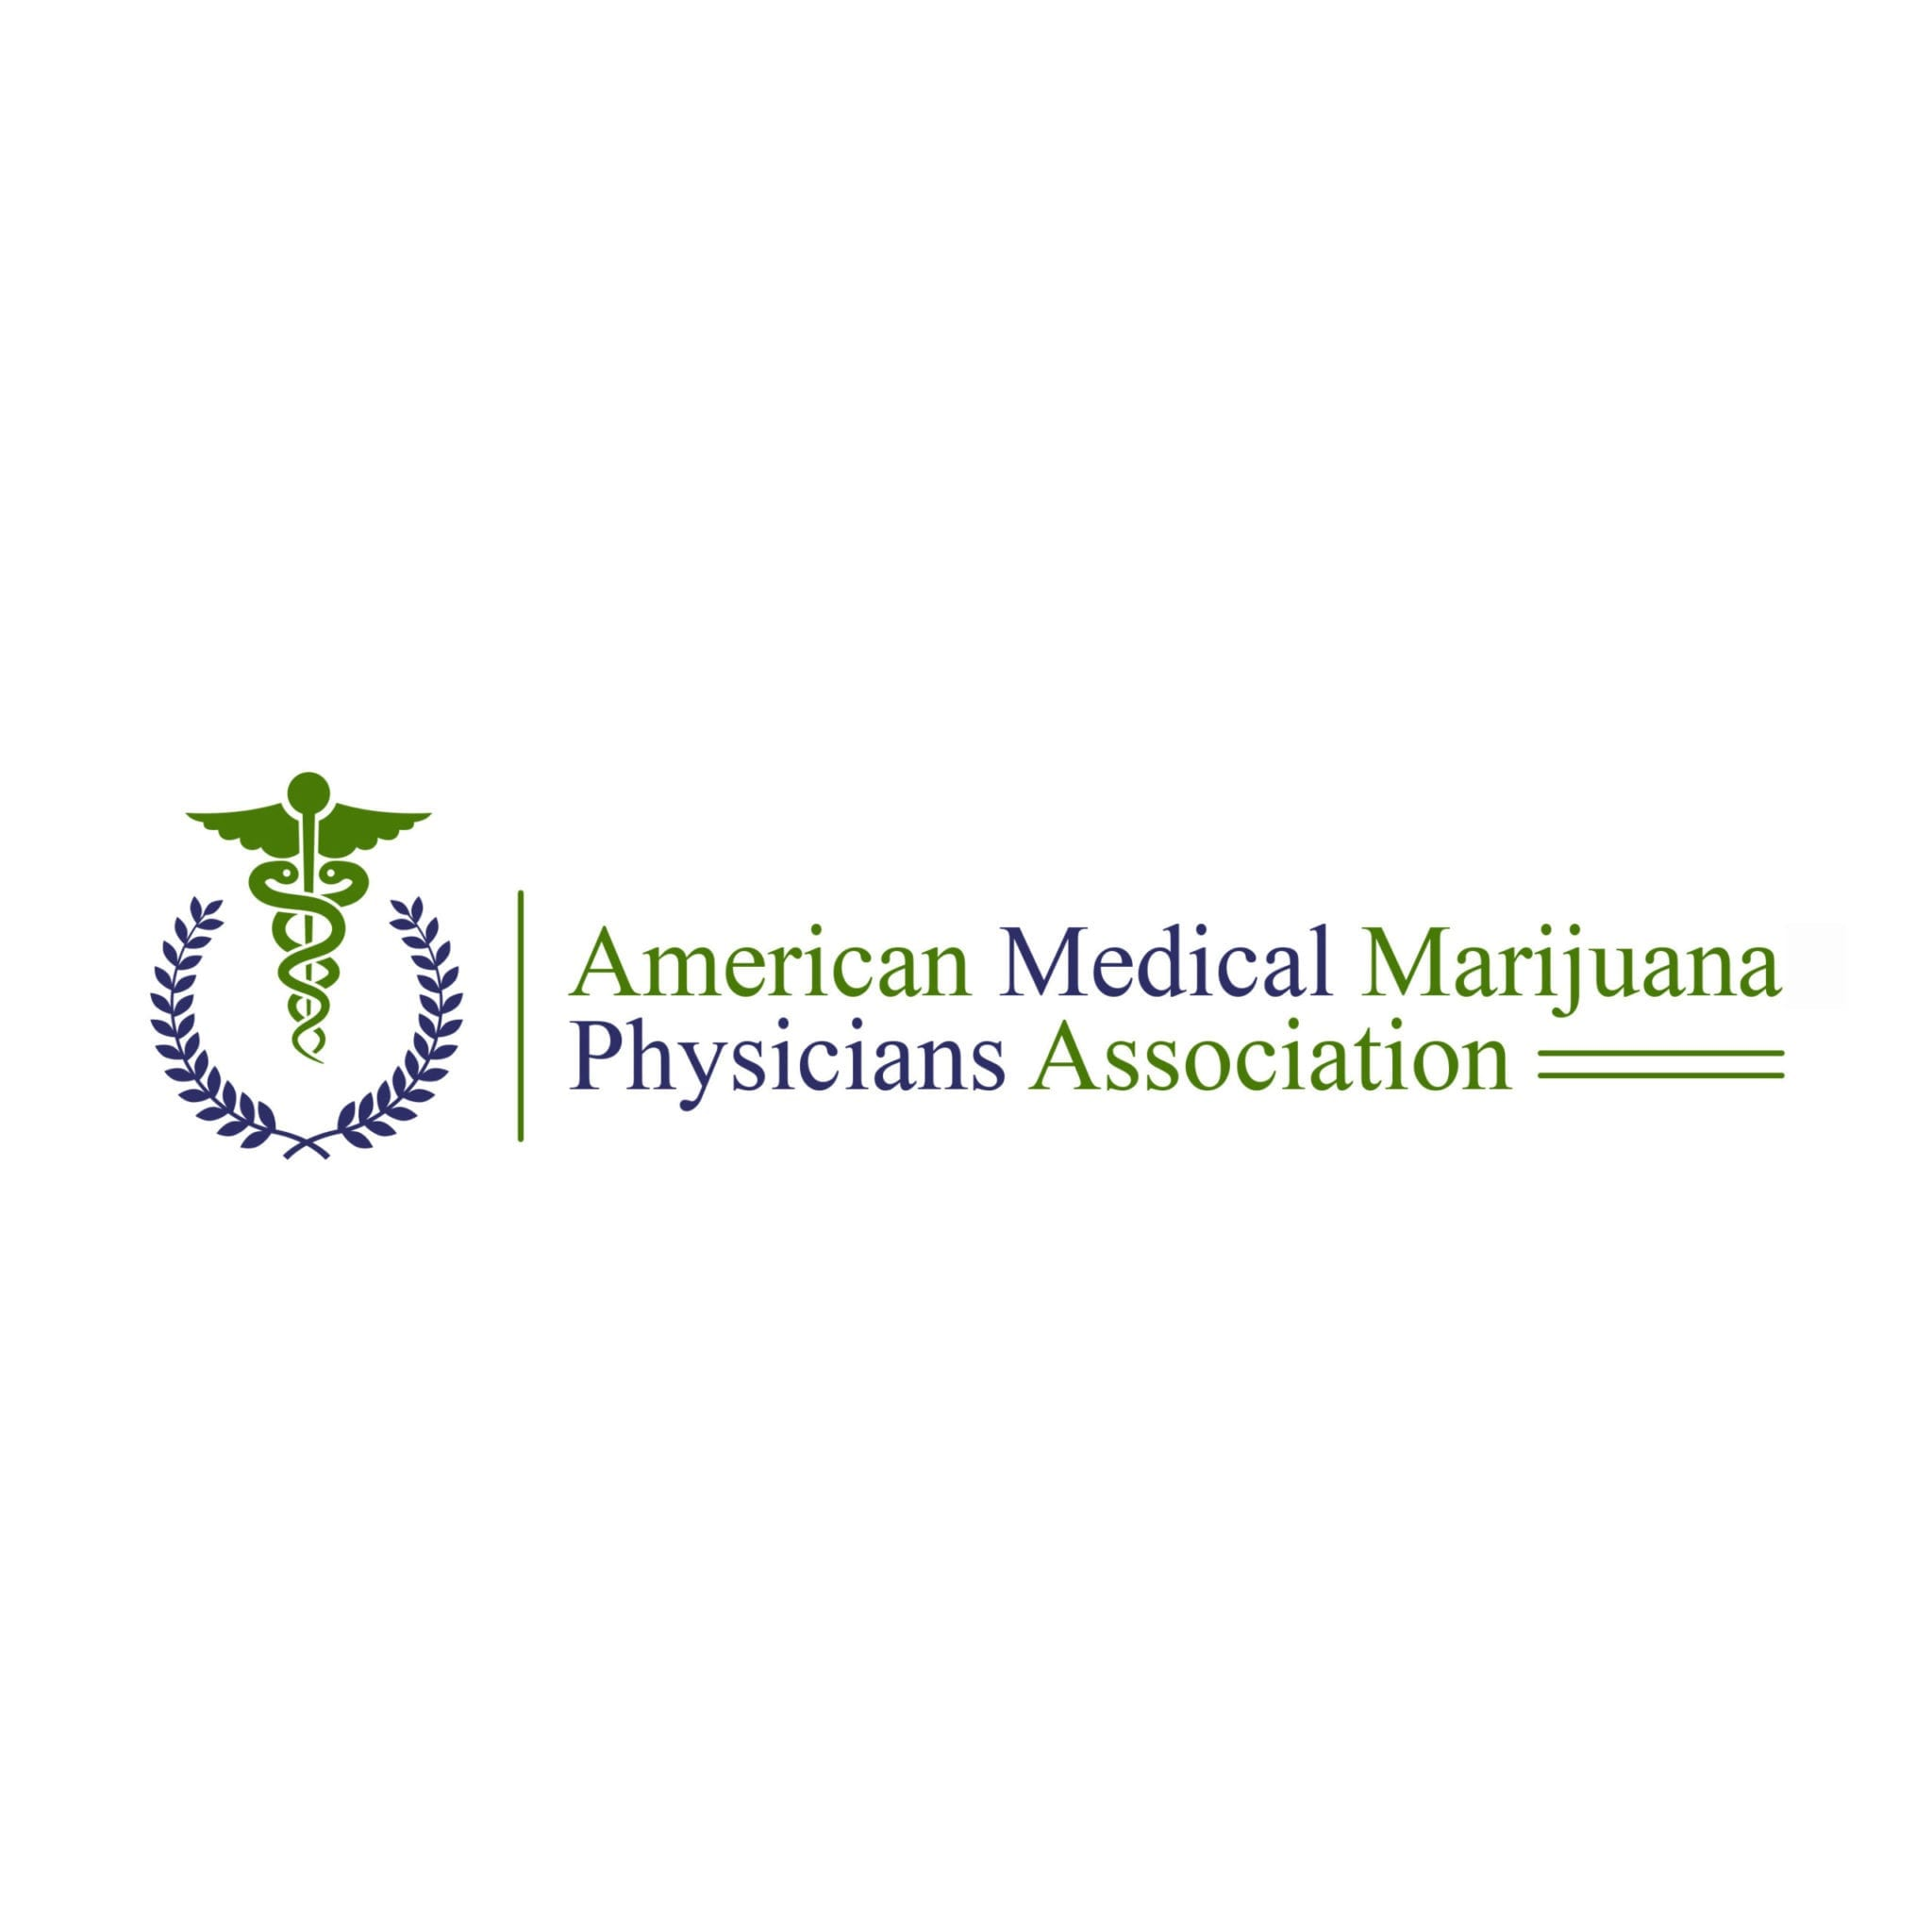 American Medical Marijuana Physicians Association